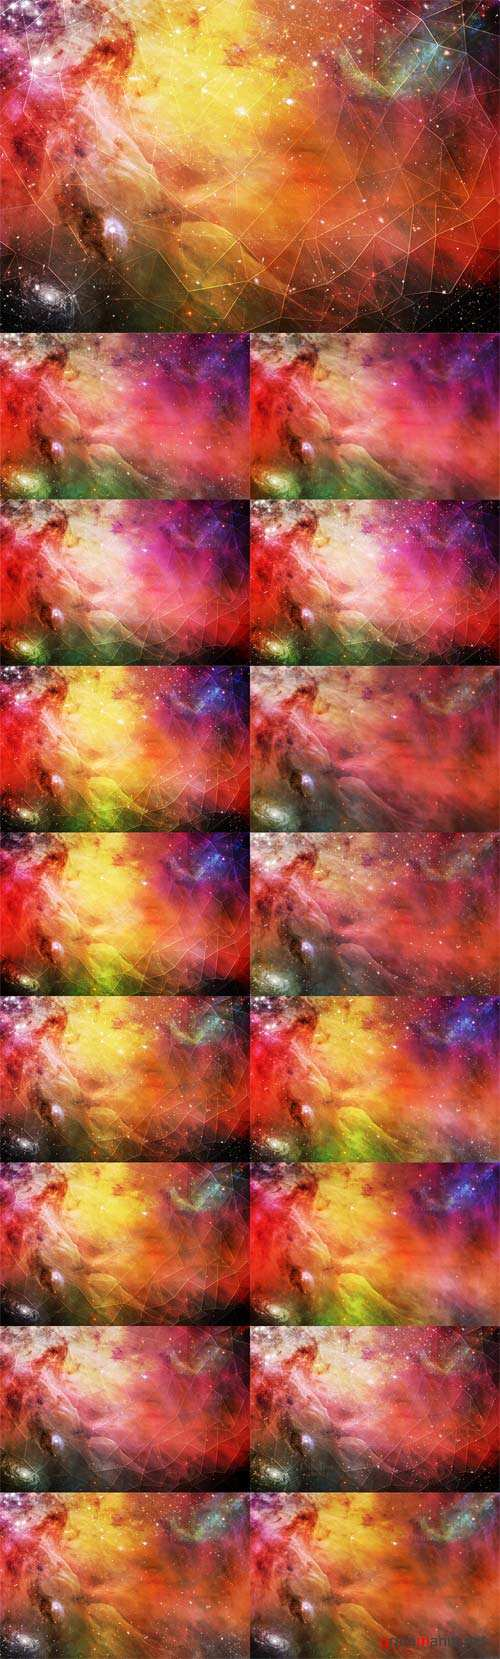 Colorful Space Geometry - Creativemarket 126134